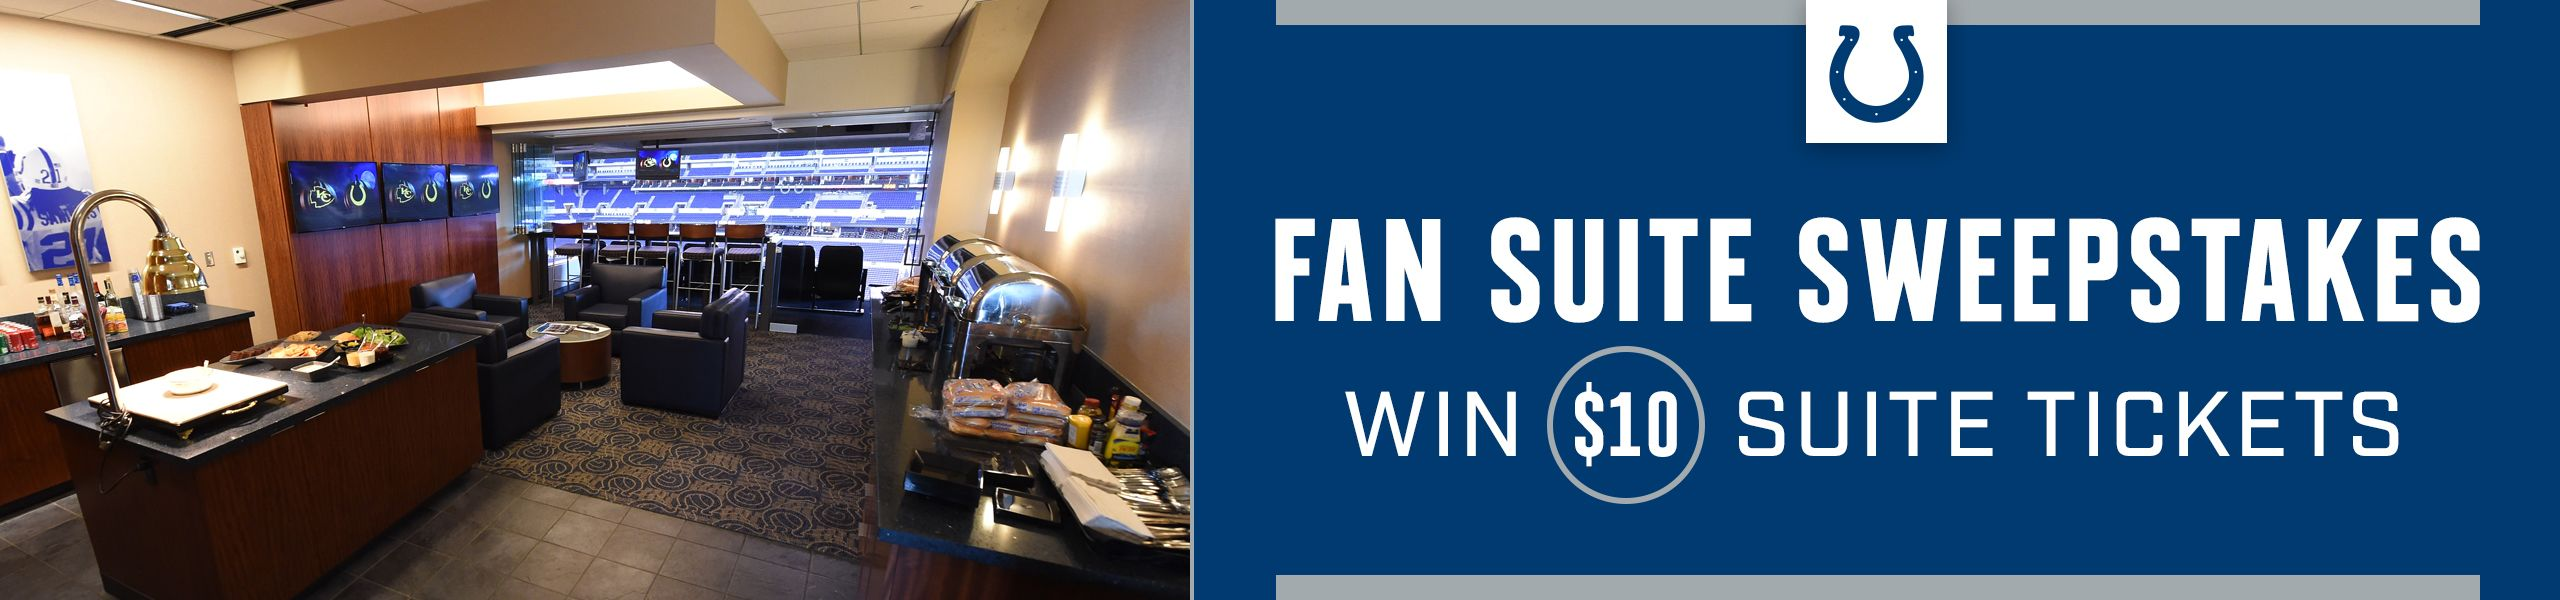 Fan Suite Sweepstakes. Win $10 Suite Tickets